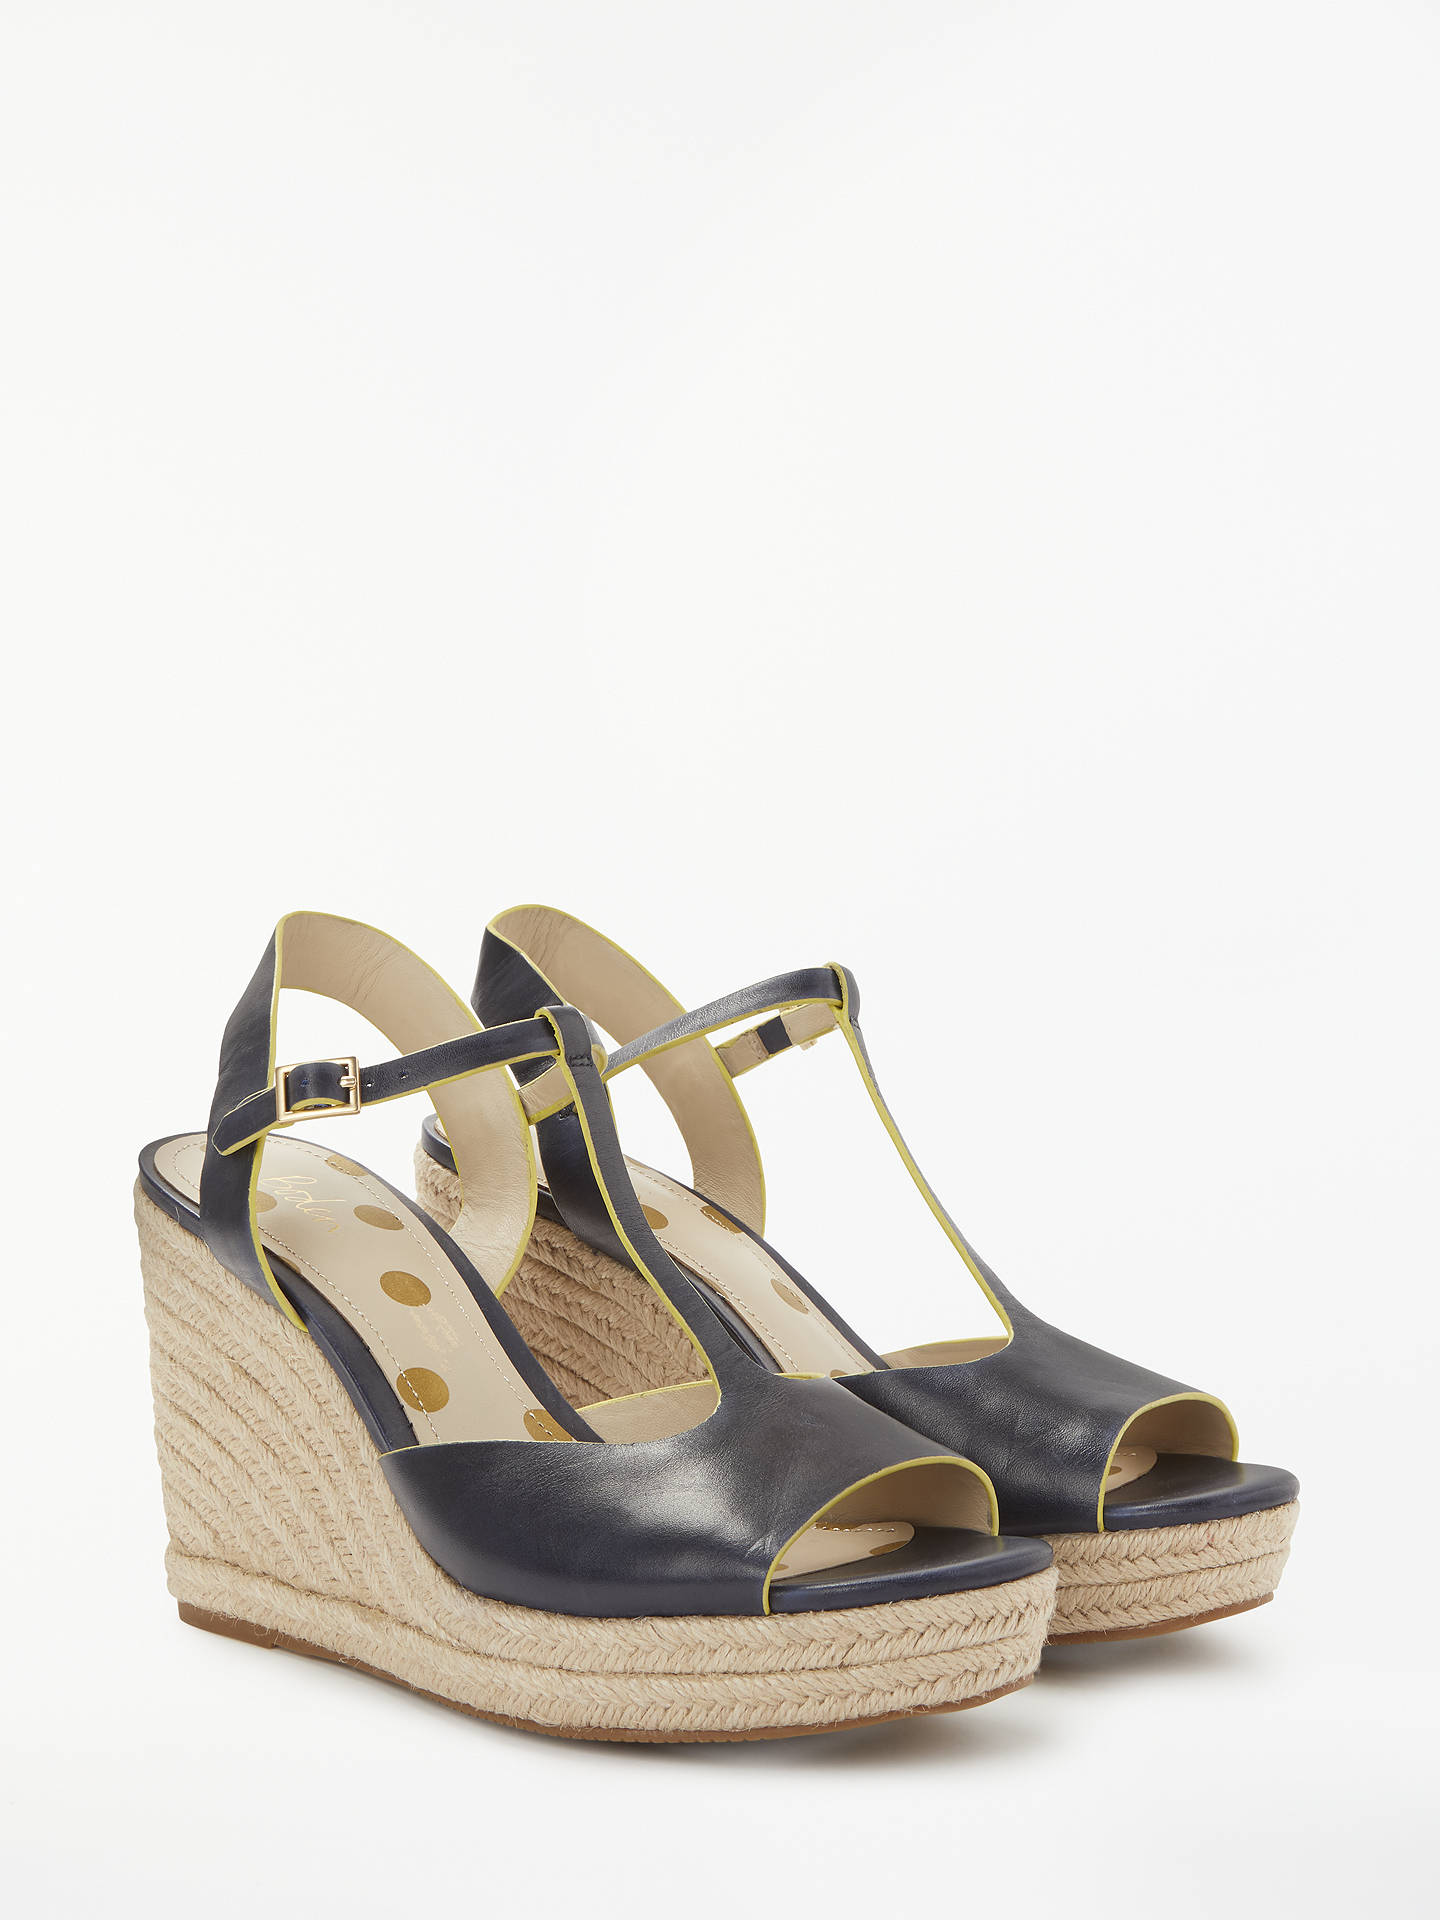 3058602a1a3 Boden Carrie Espadrille Wedge Heel Sandals at John Lewis   Partners